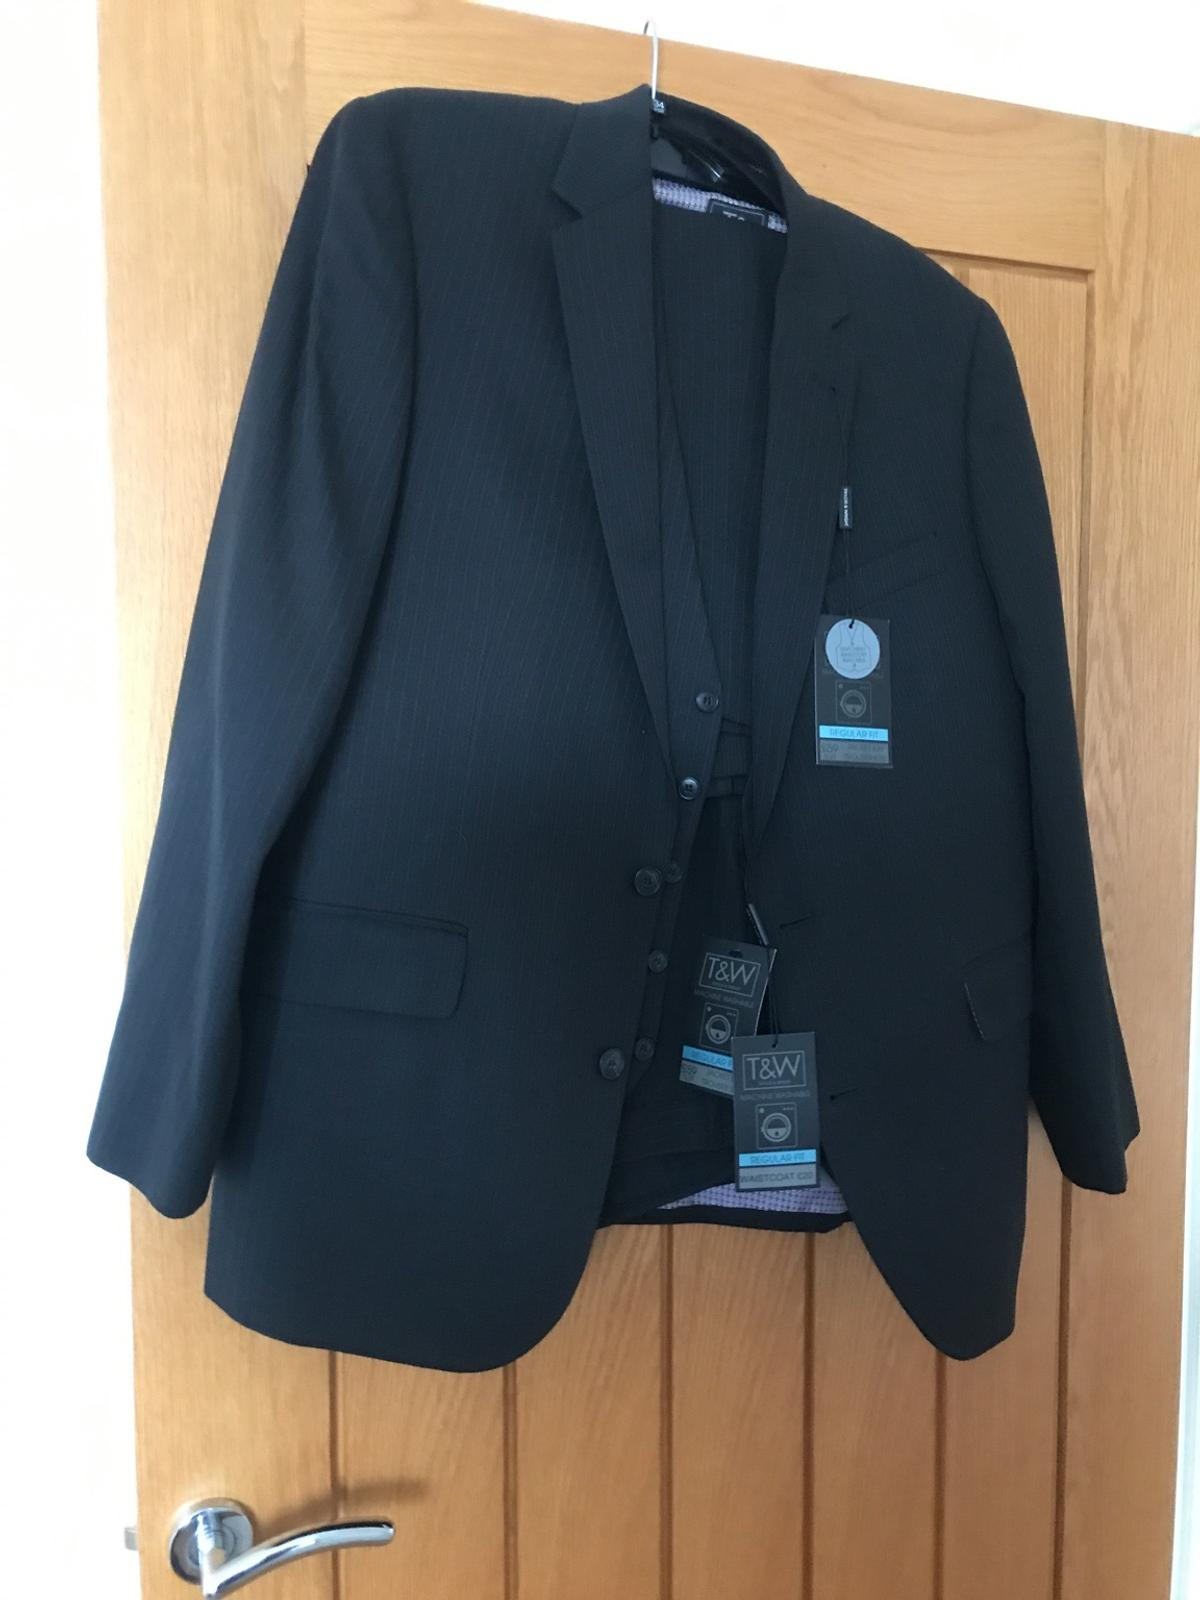 Brand new mans suit never worn still has tags on jacket is42chest as is the waistcoat trousers 34waist 29inside leg